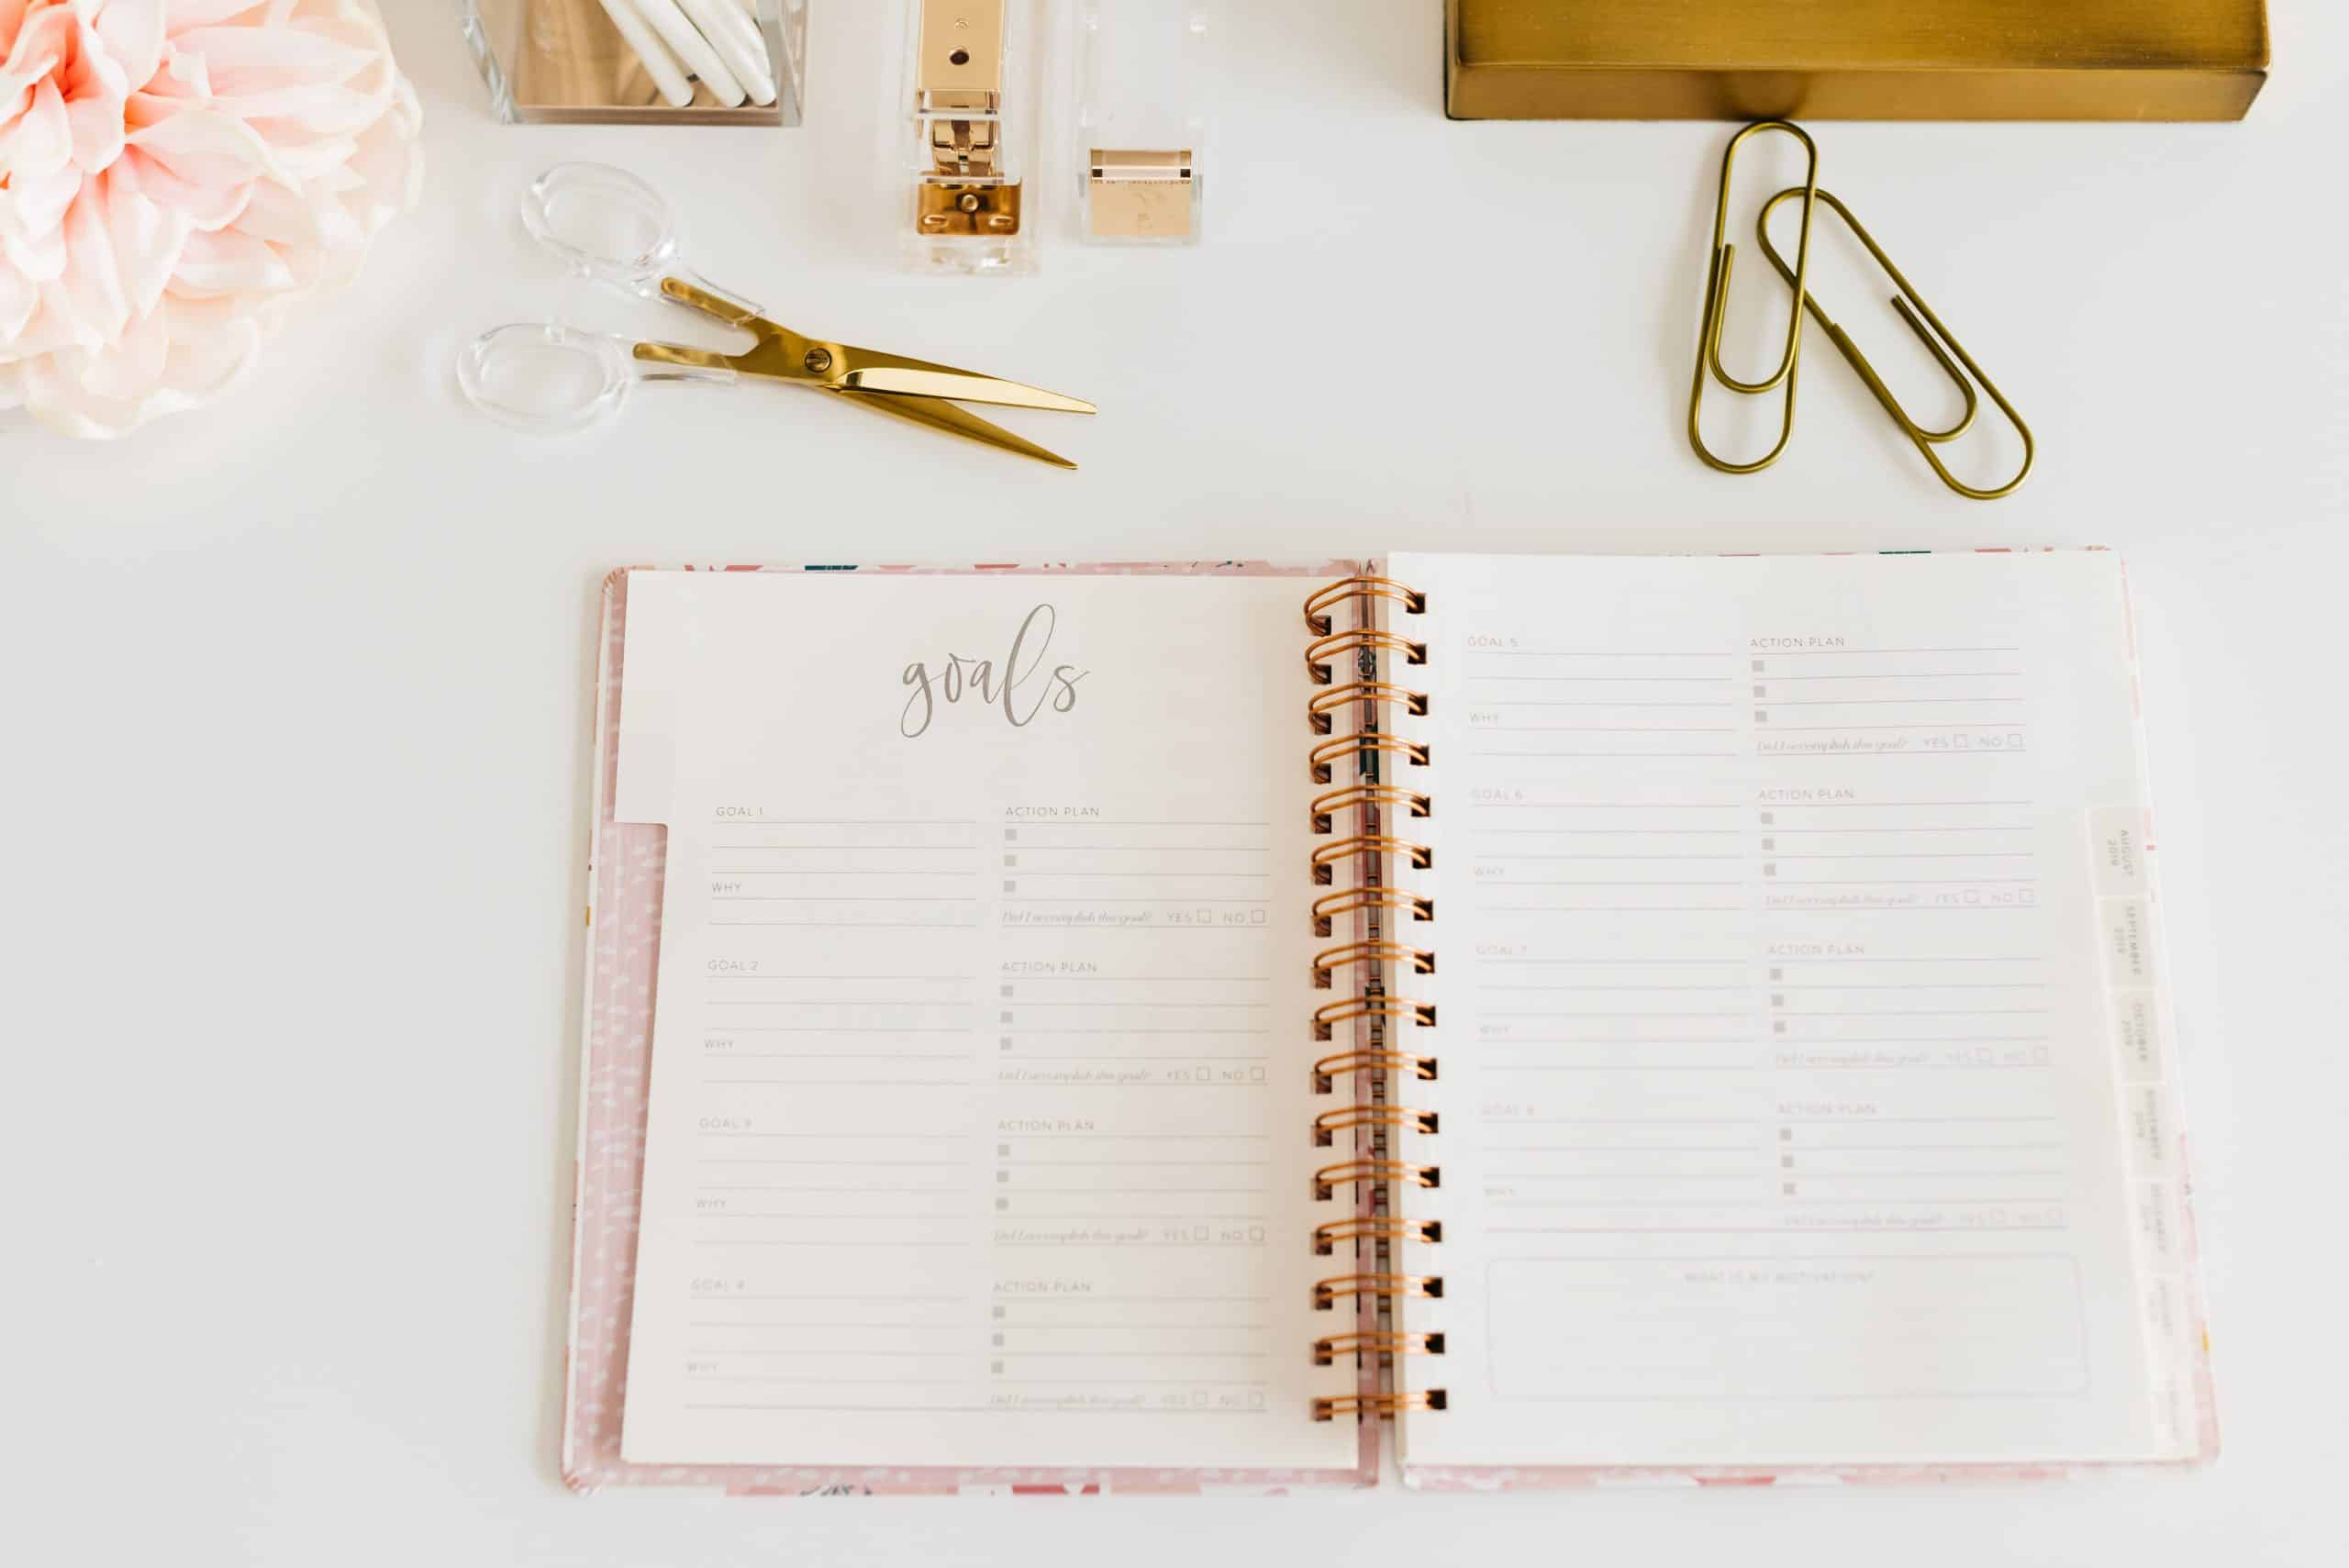 4-effective-goal-setting-templates-to-help-you-set-goals